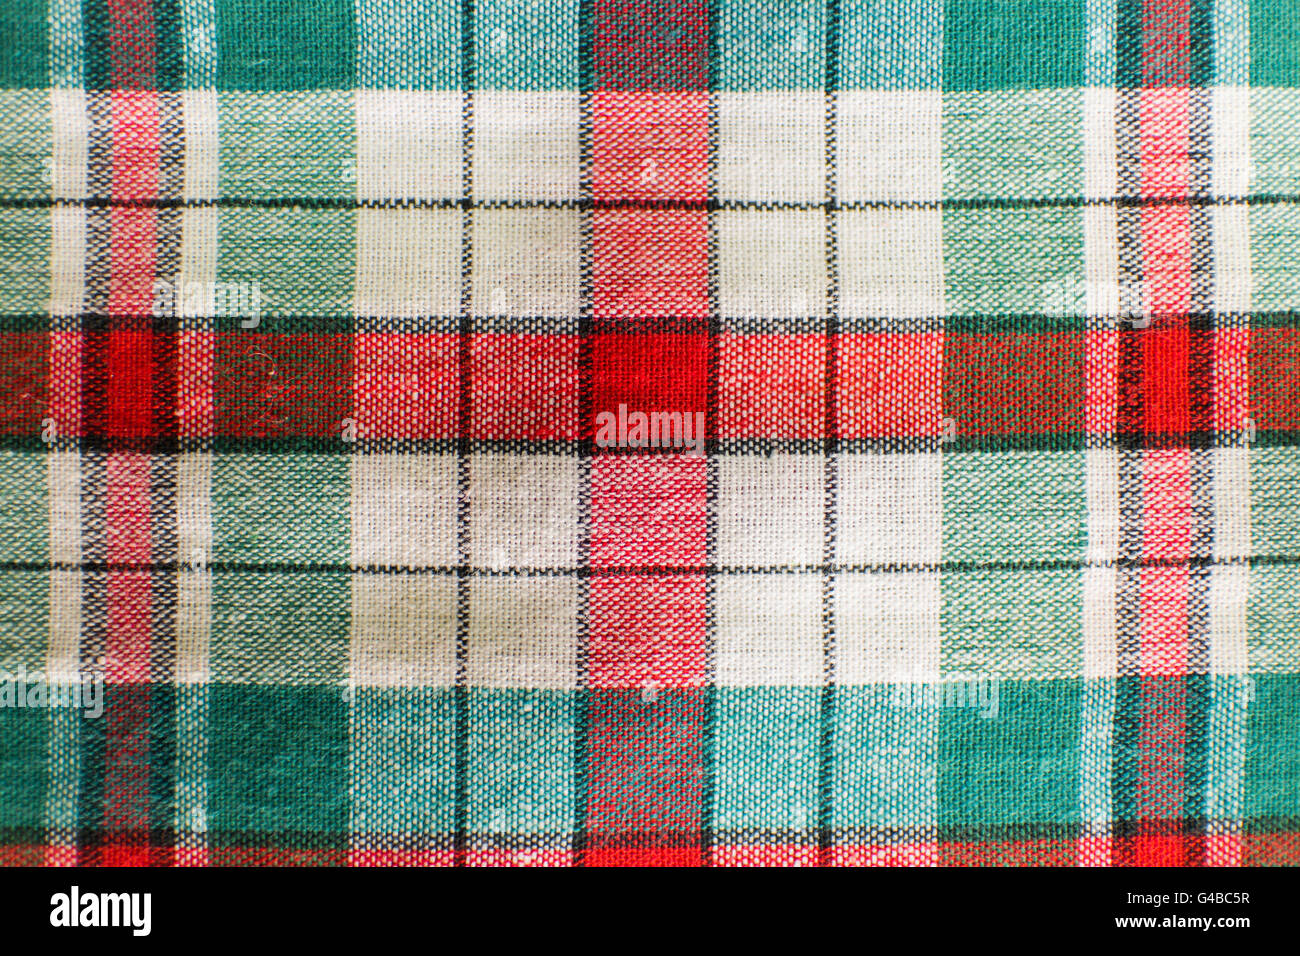 tablecloth thai style texture wallpaper - Stock Image